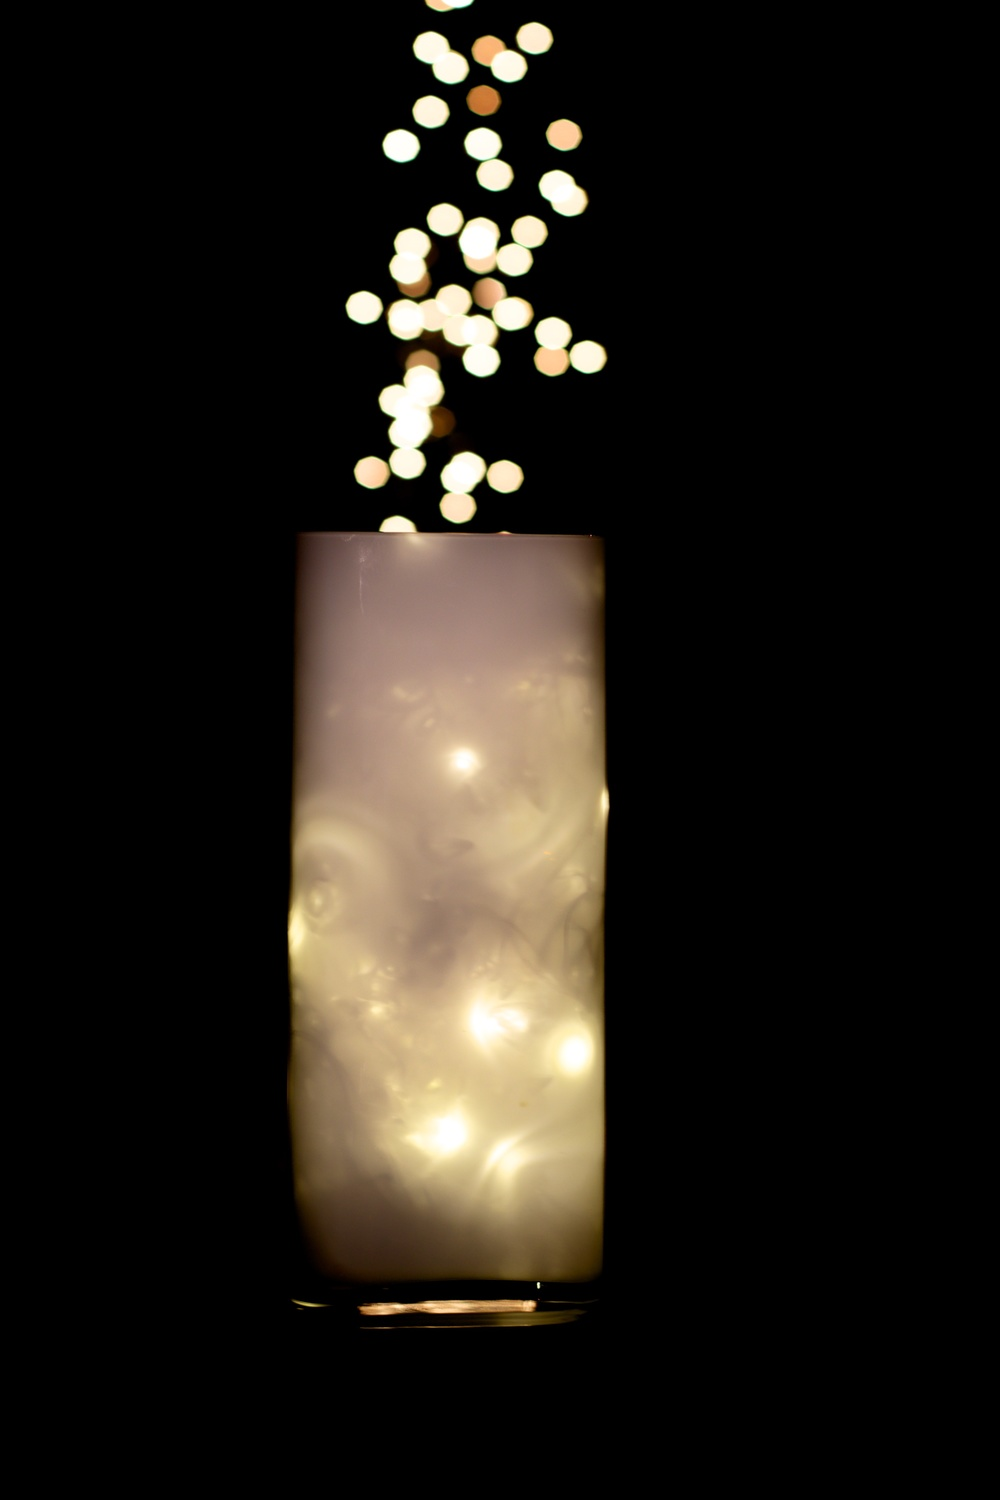 Bubbles of light drift up out a luminous glass vase.  Canon 7D Mark ii EF 50mm 1.4 at f2.8 1/13 ISO 100